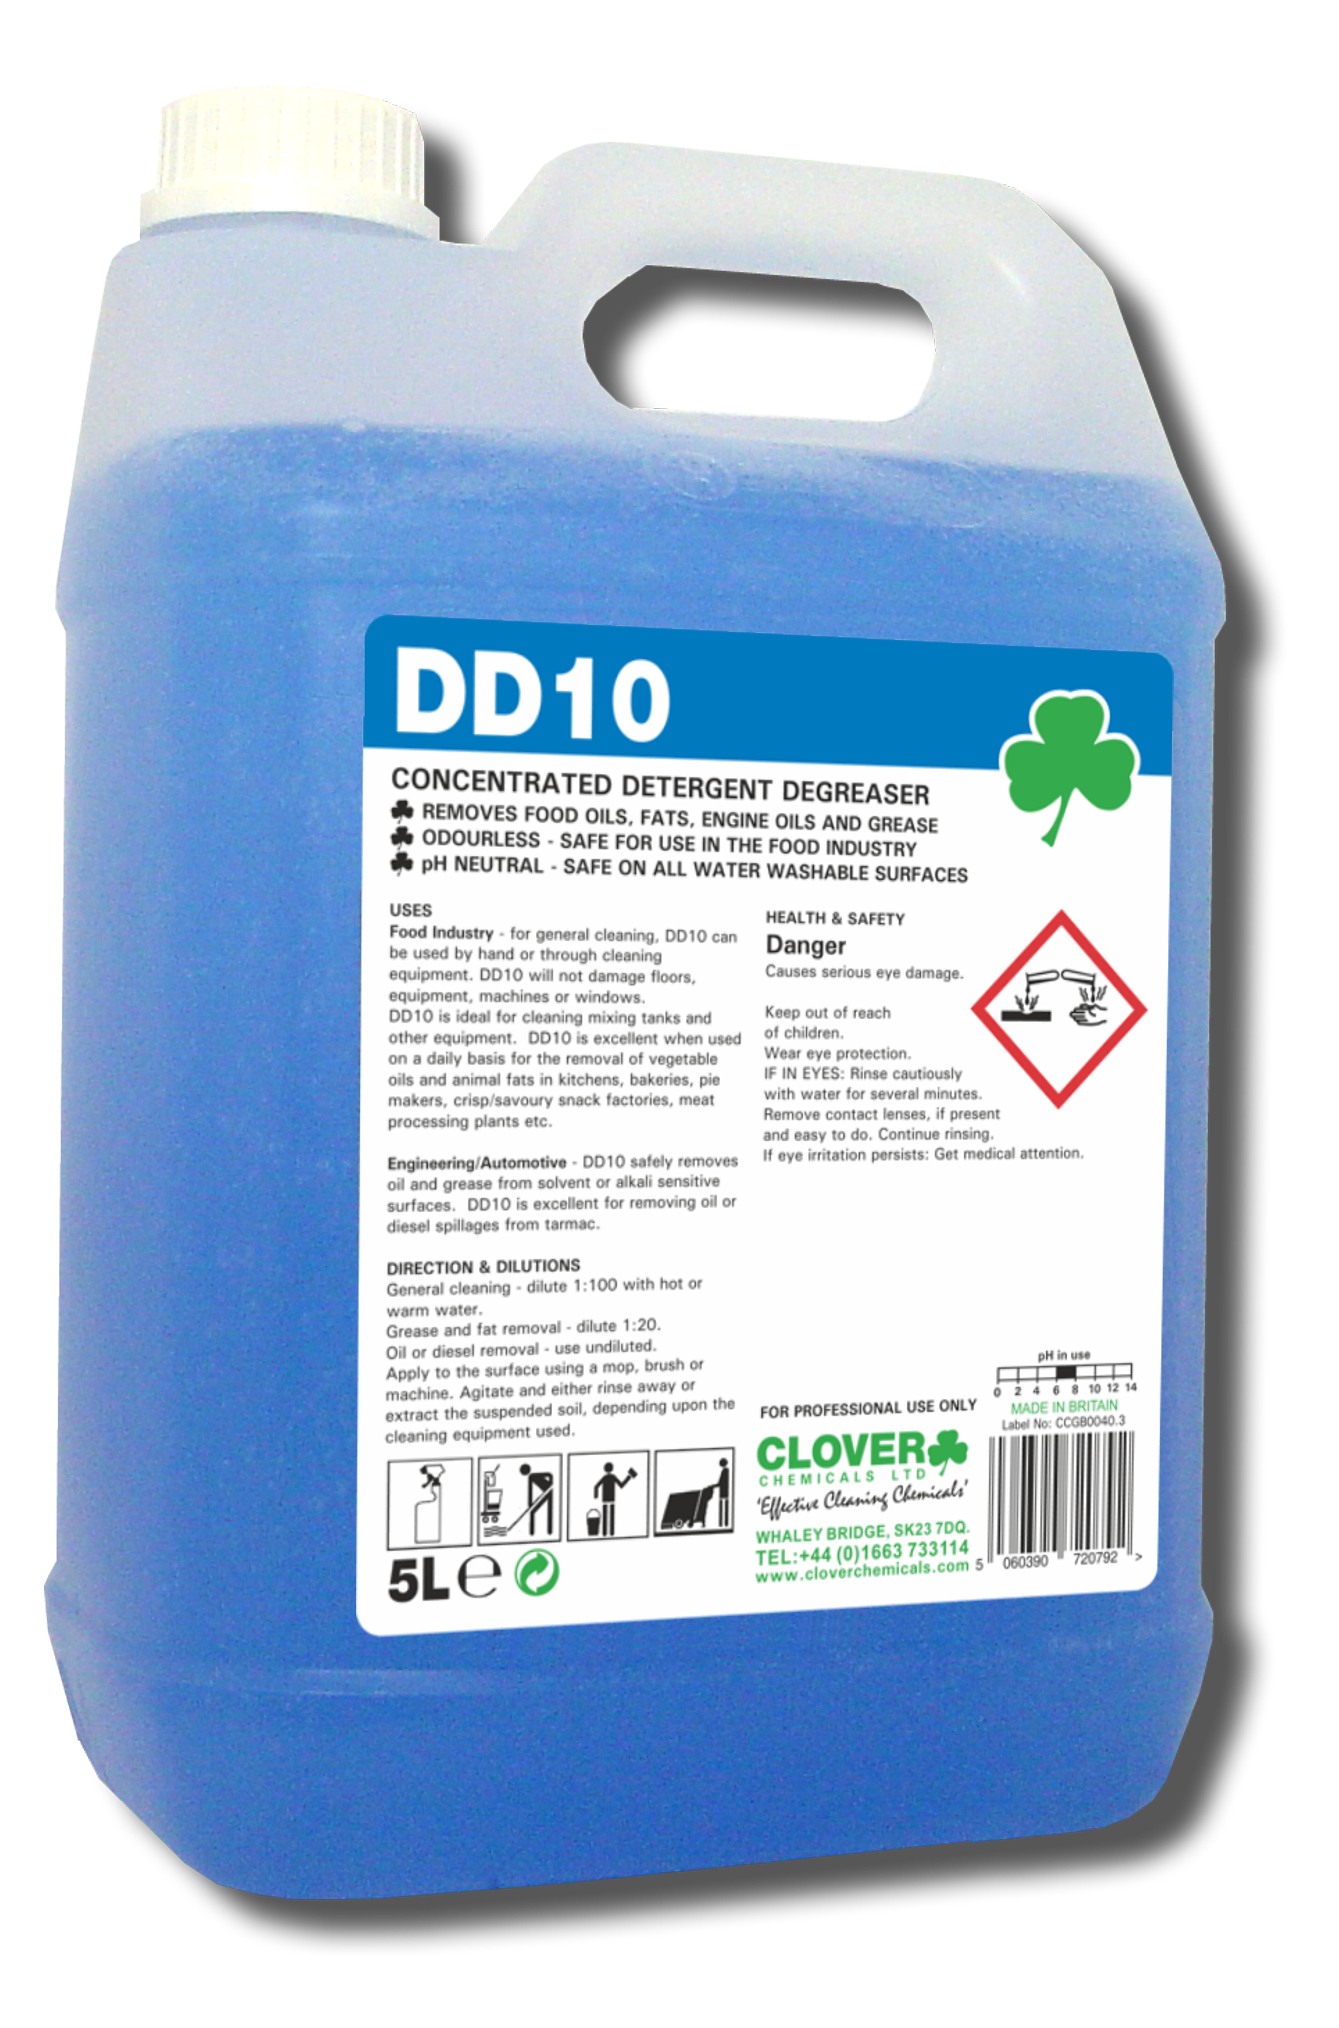 Clover DD10 - Concentrated Detergent Degreaser